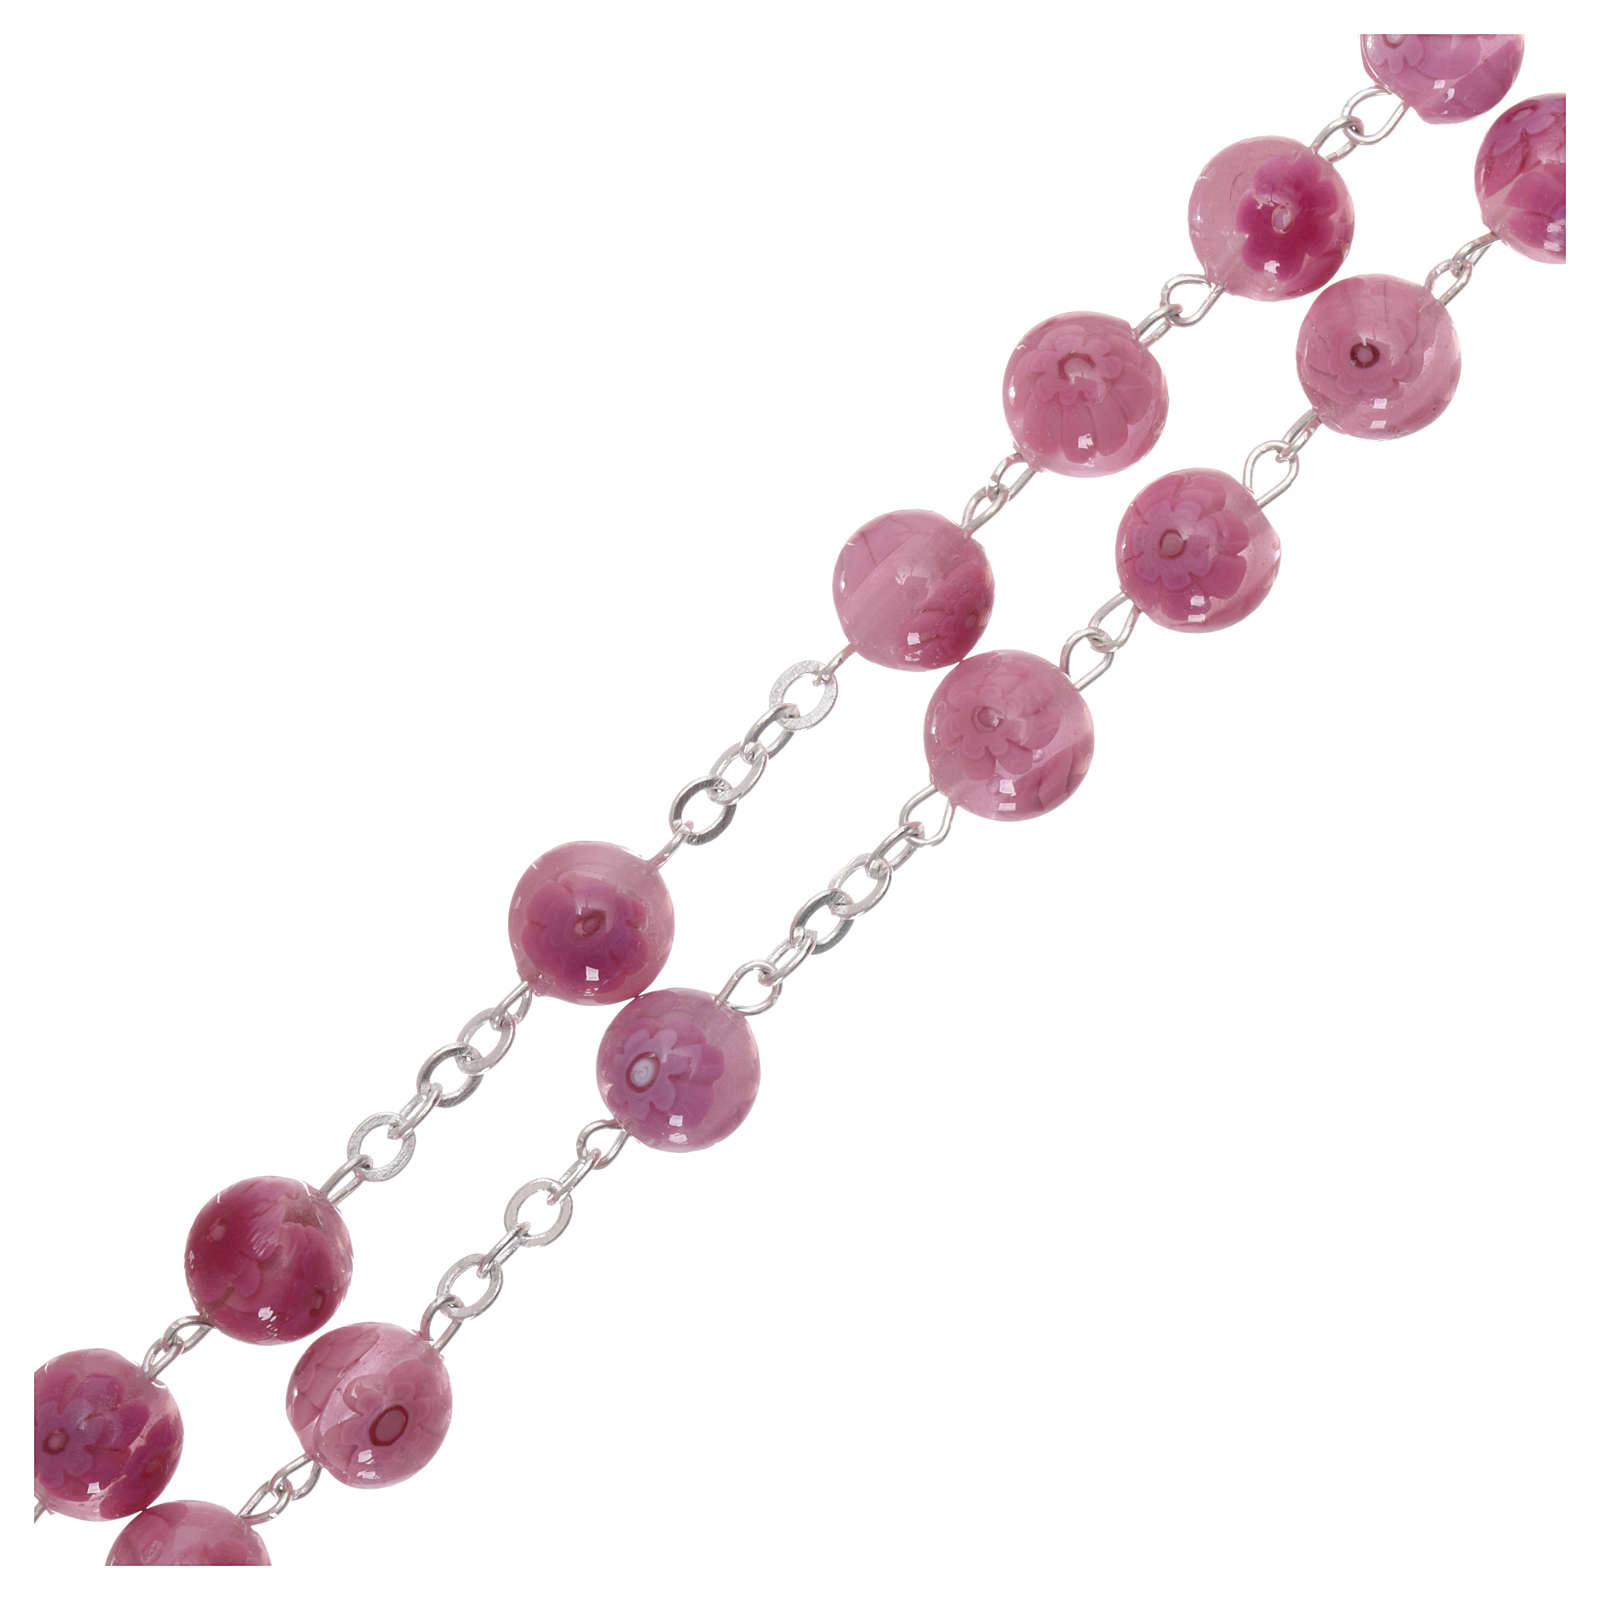 Rosary beads in pink Murano glass style with floral decorations 8mm 4